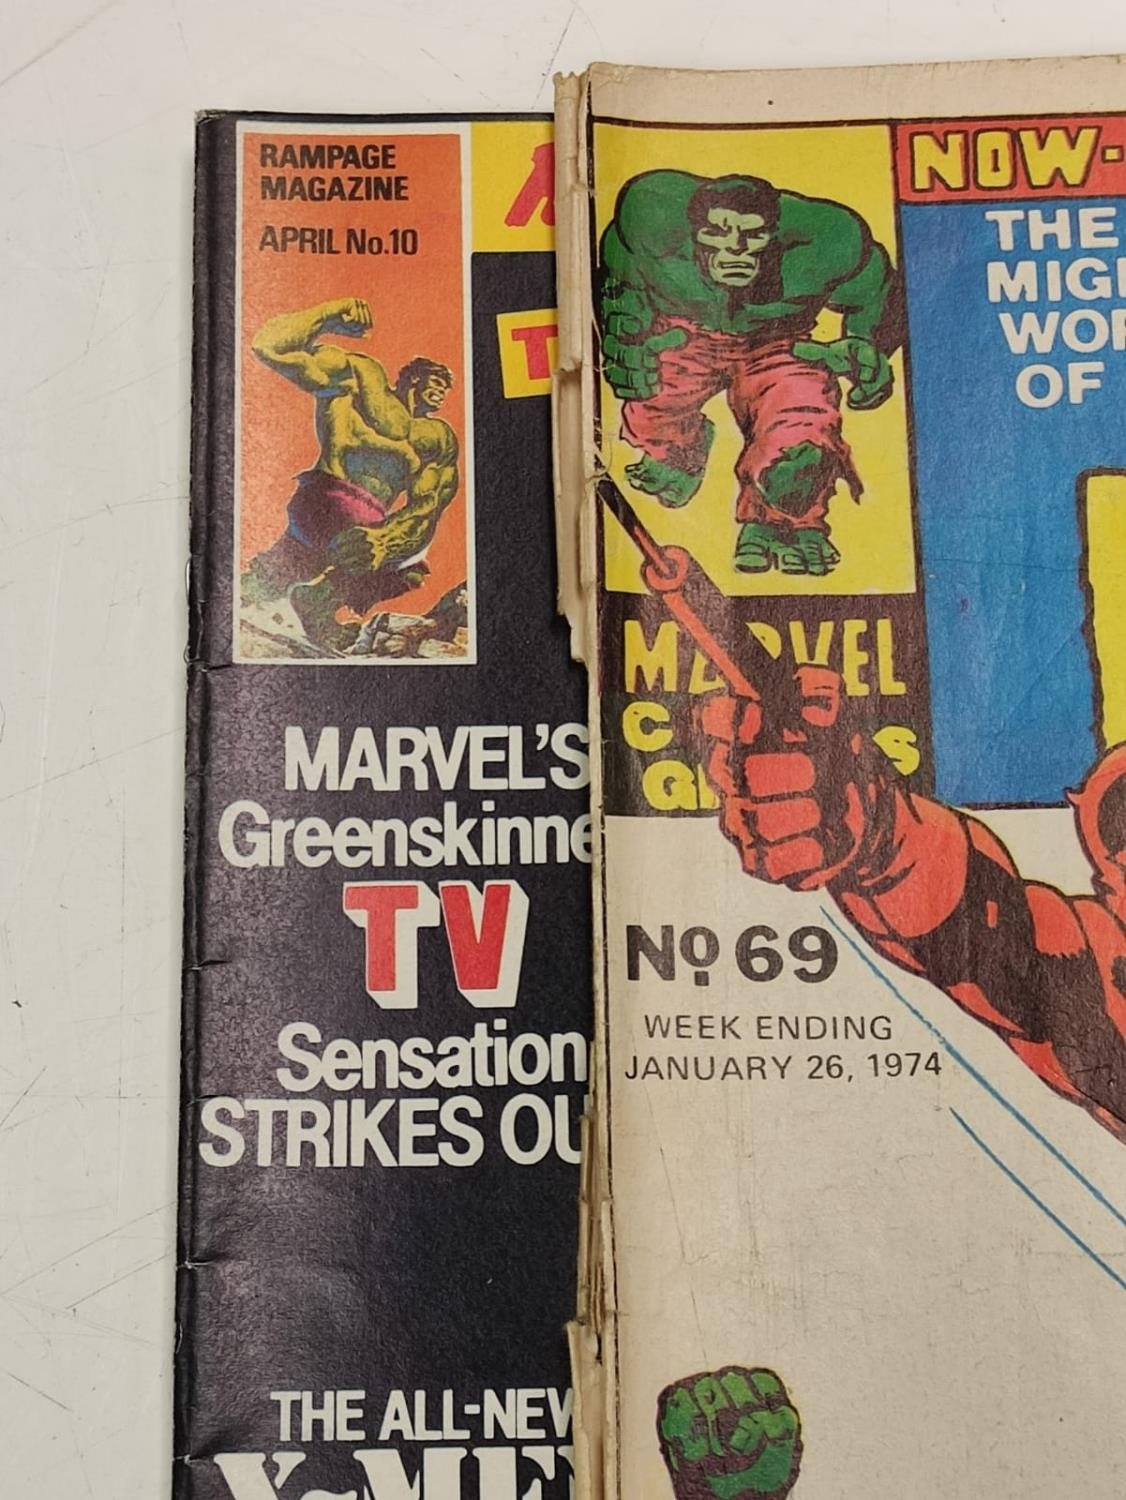 20 editions of mixed Vintage Marvel Comics. - Image 46 of 56